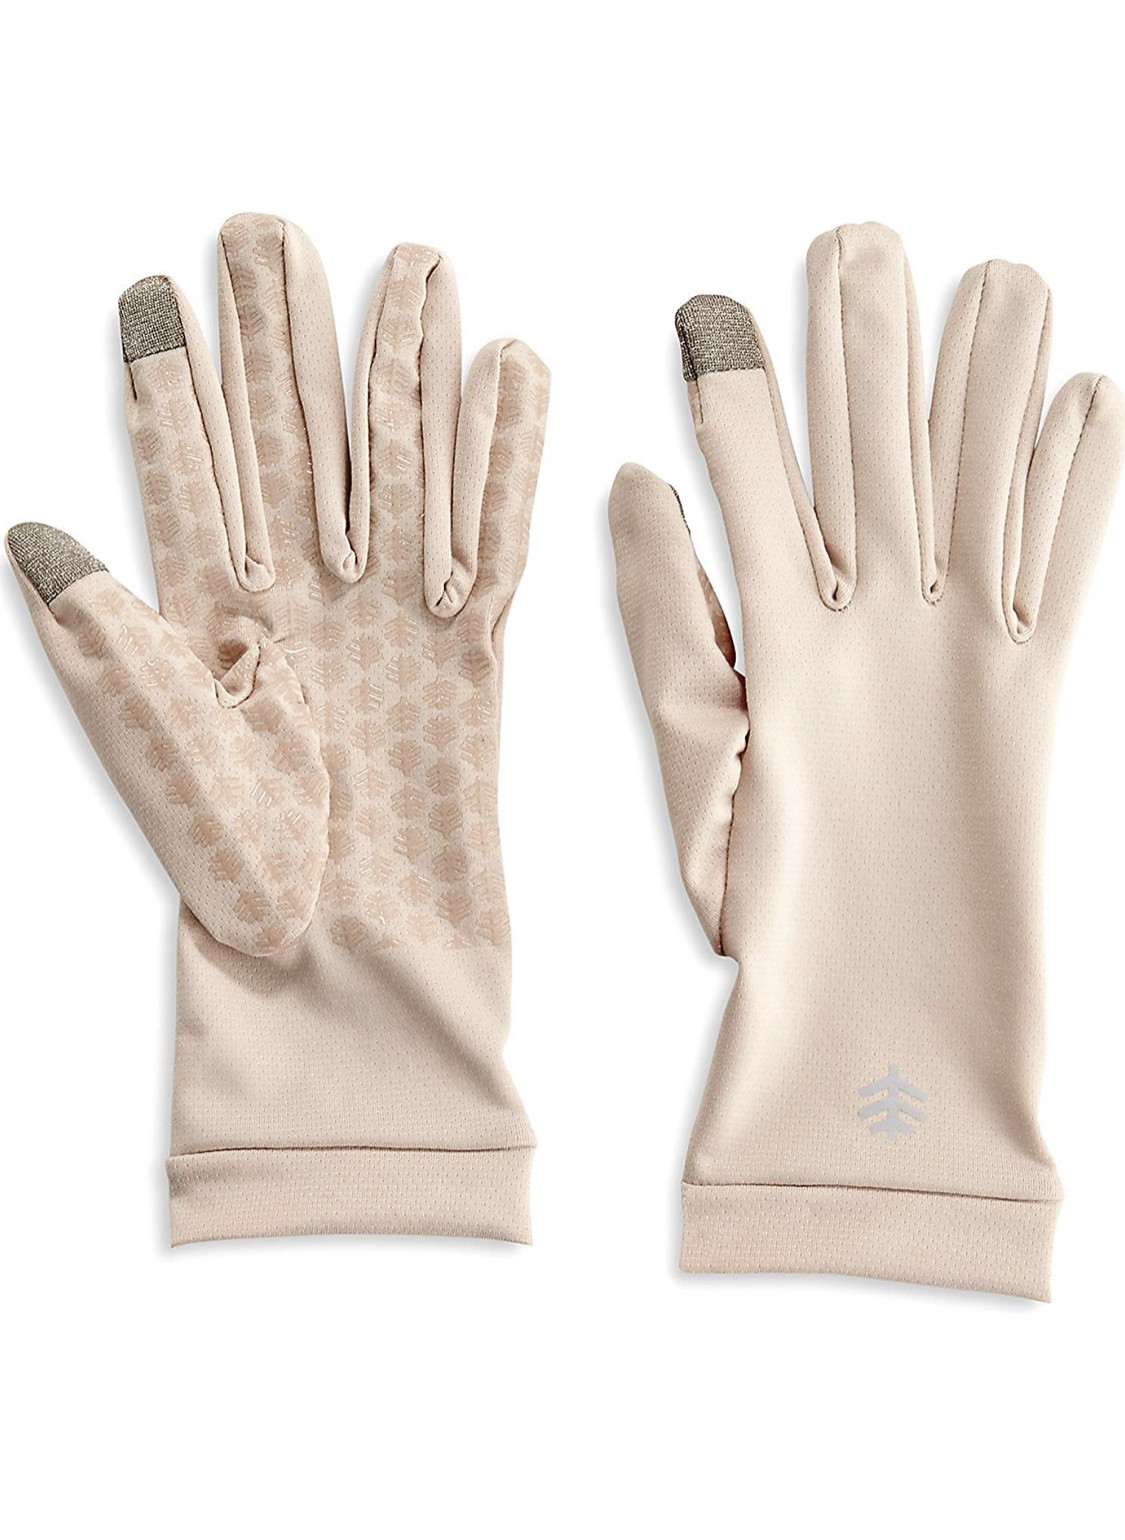 COOLIBAR UPF 50+ SUN BEIGE GLOVES - MEDIUM